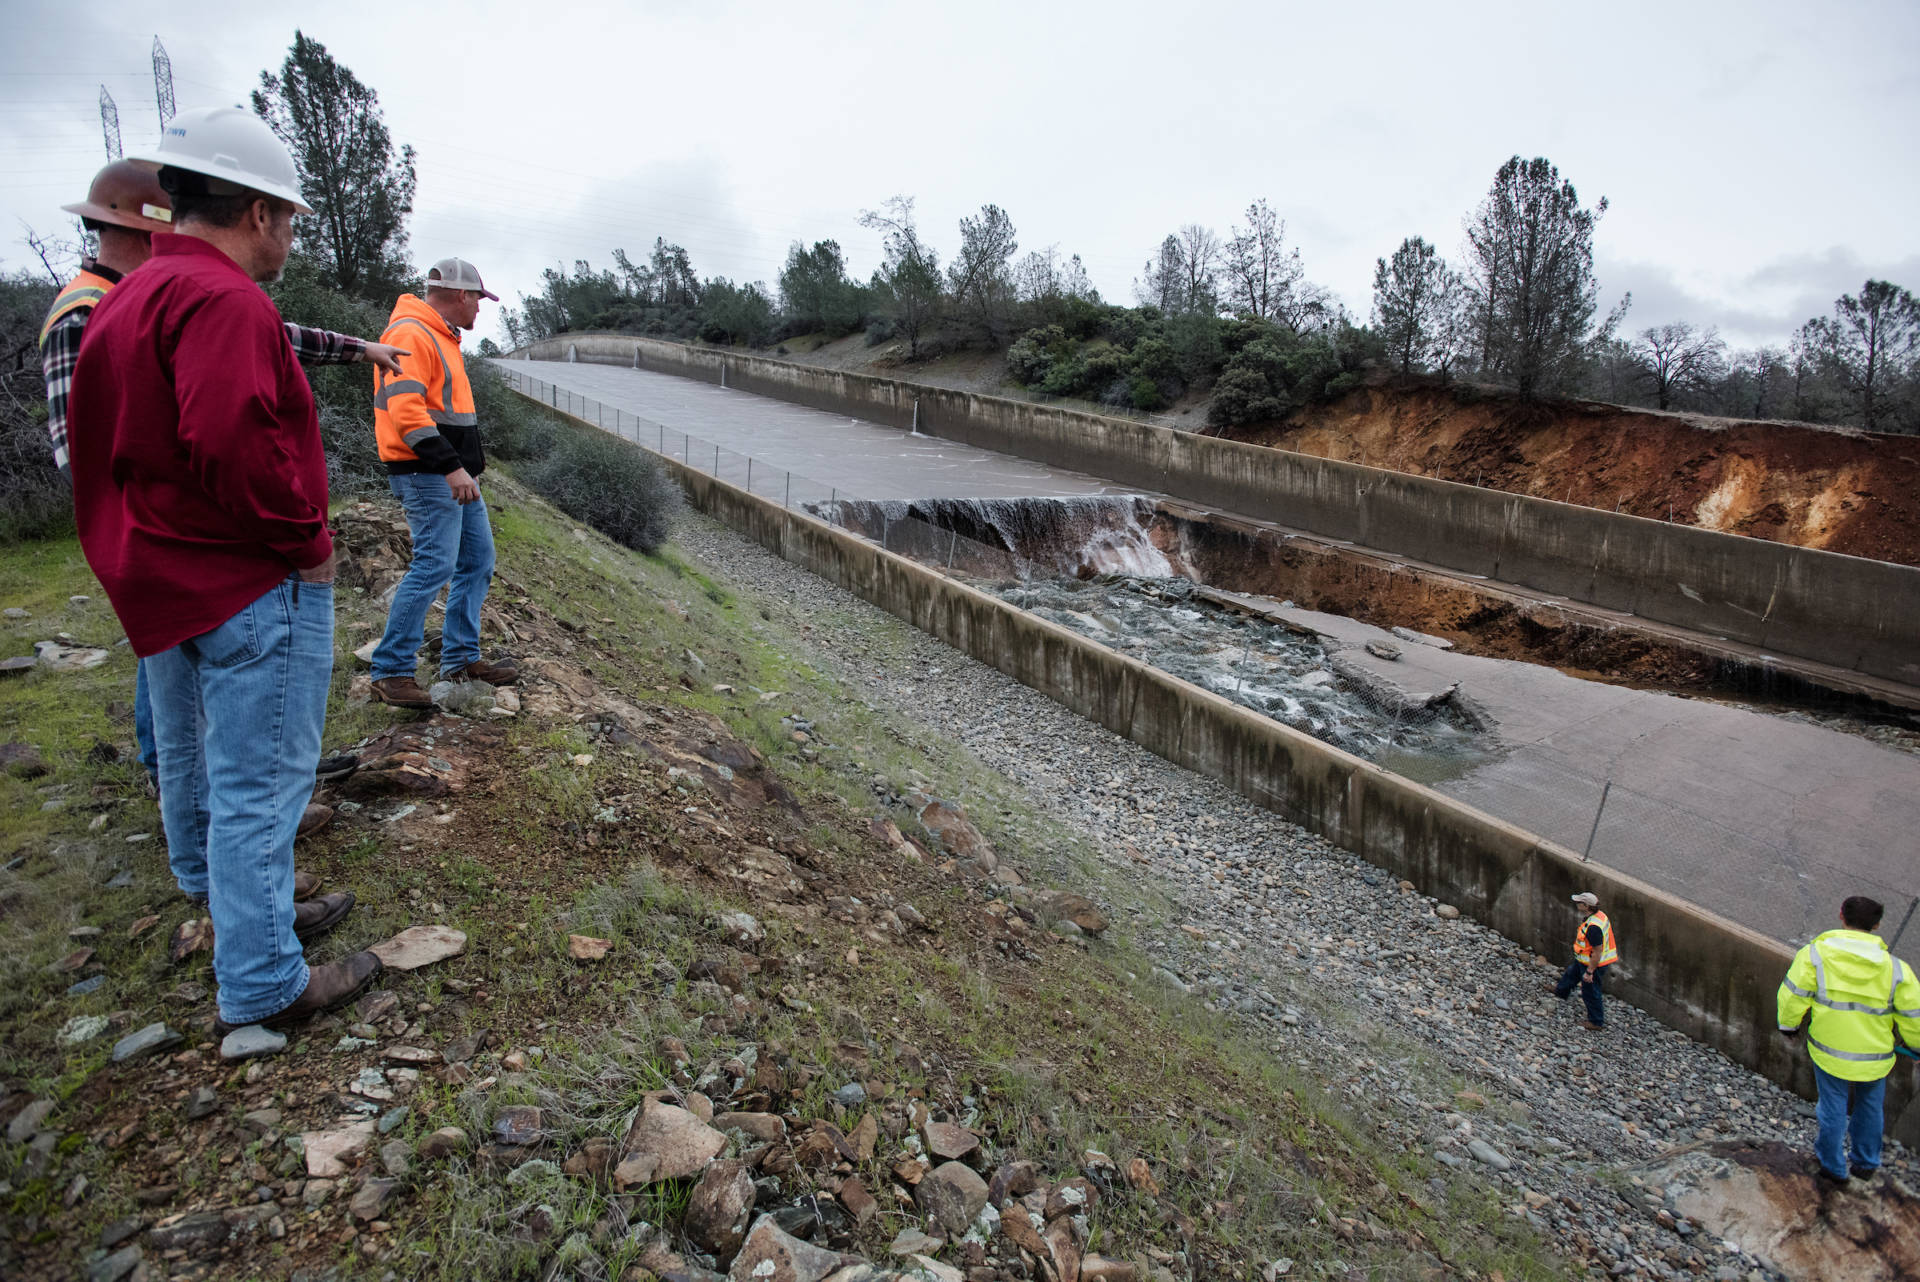 California Department of Water Resources workers inspected damage to the spillway at Oroville Dam after a breach appeared on Feb. 7, 2017. Kelly M. Grow/DWR